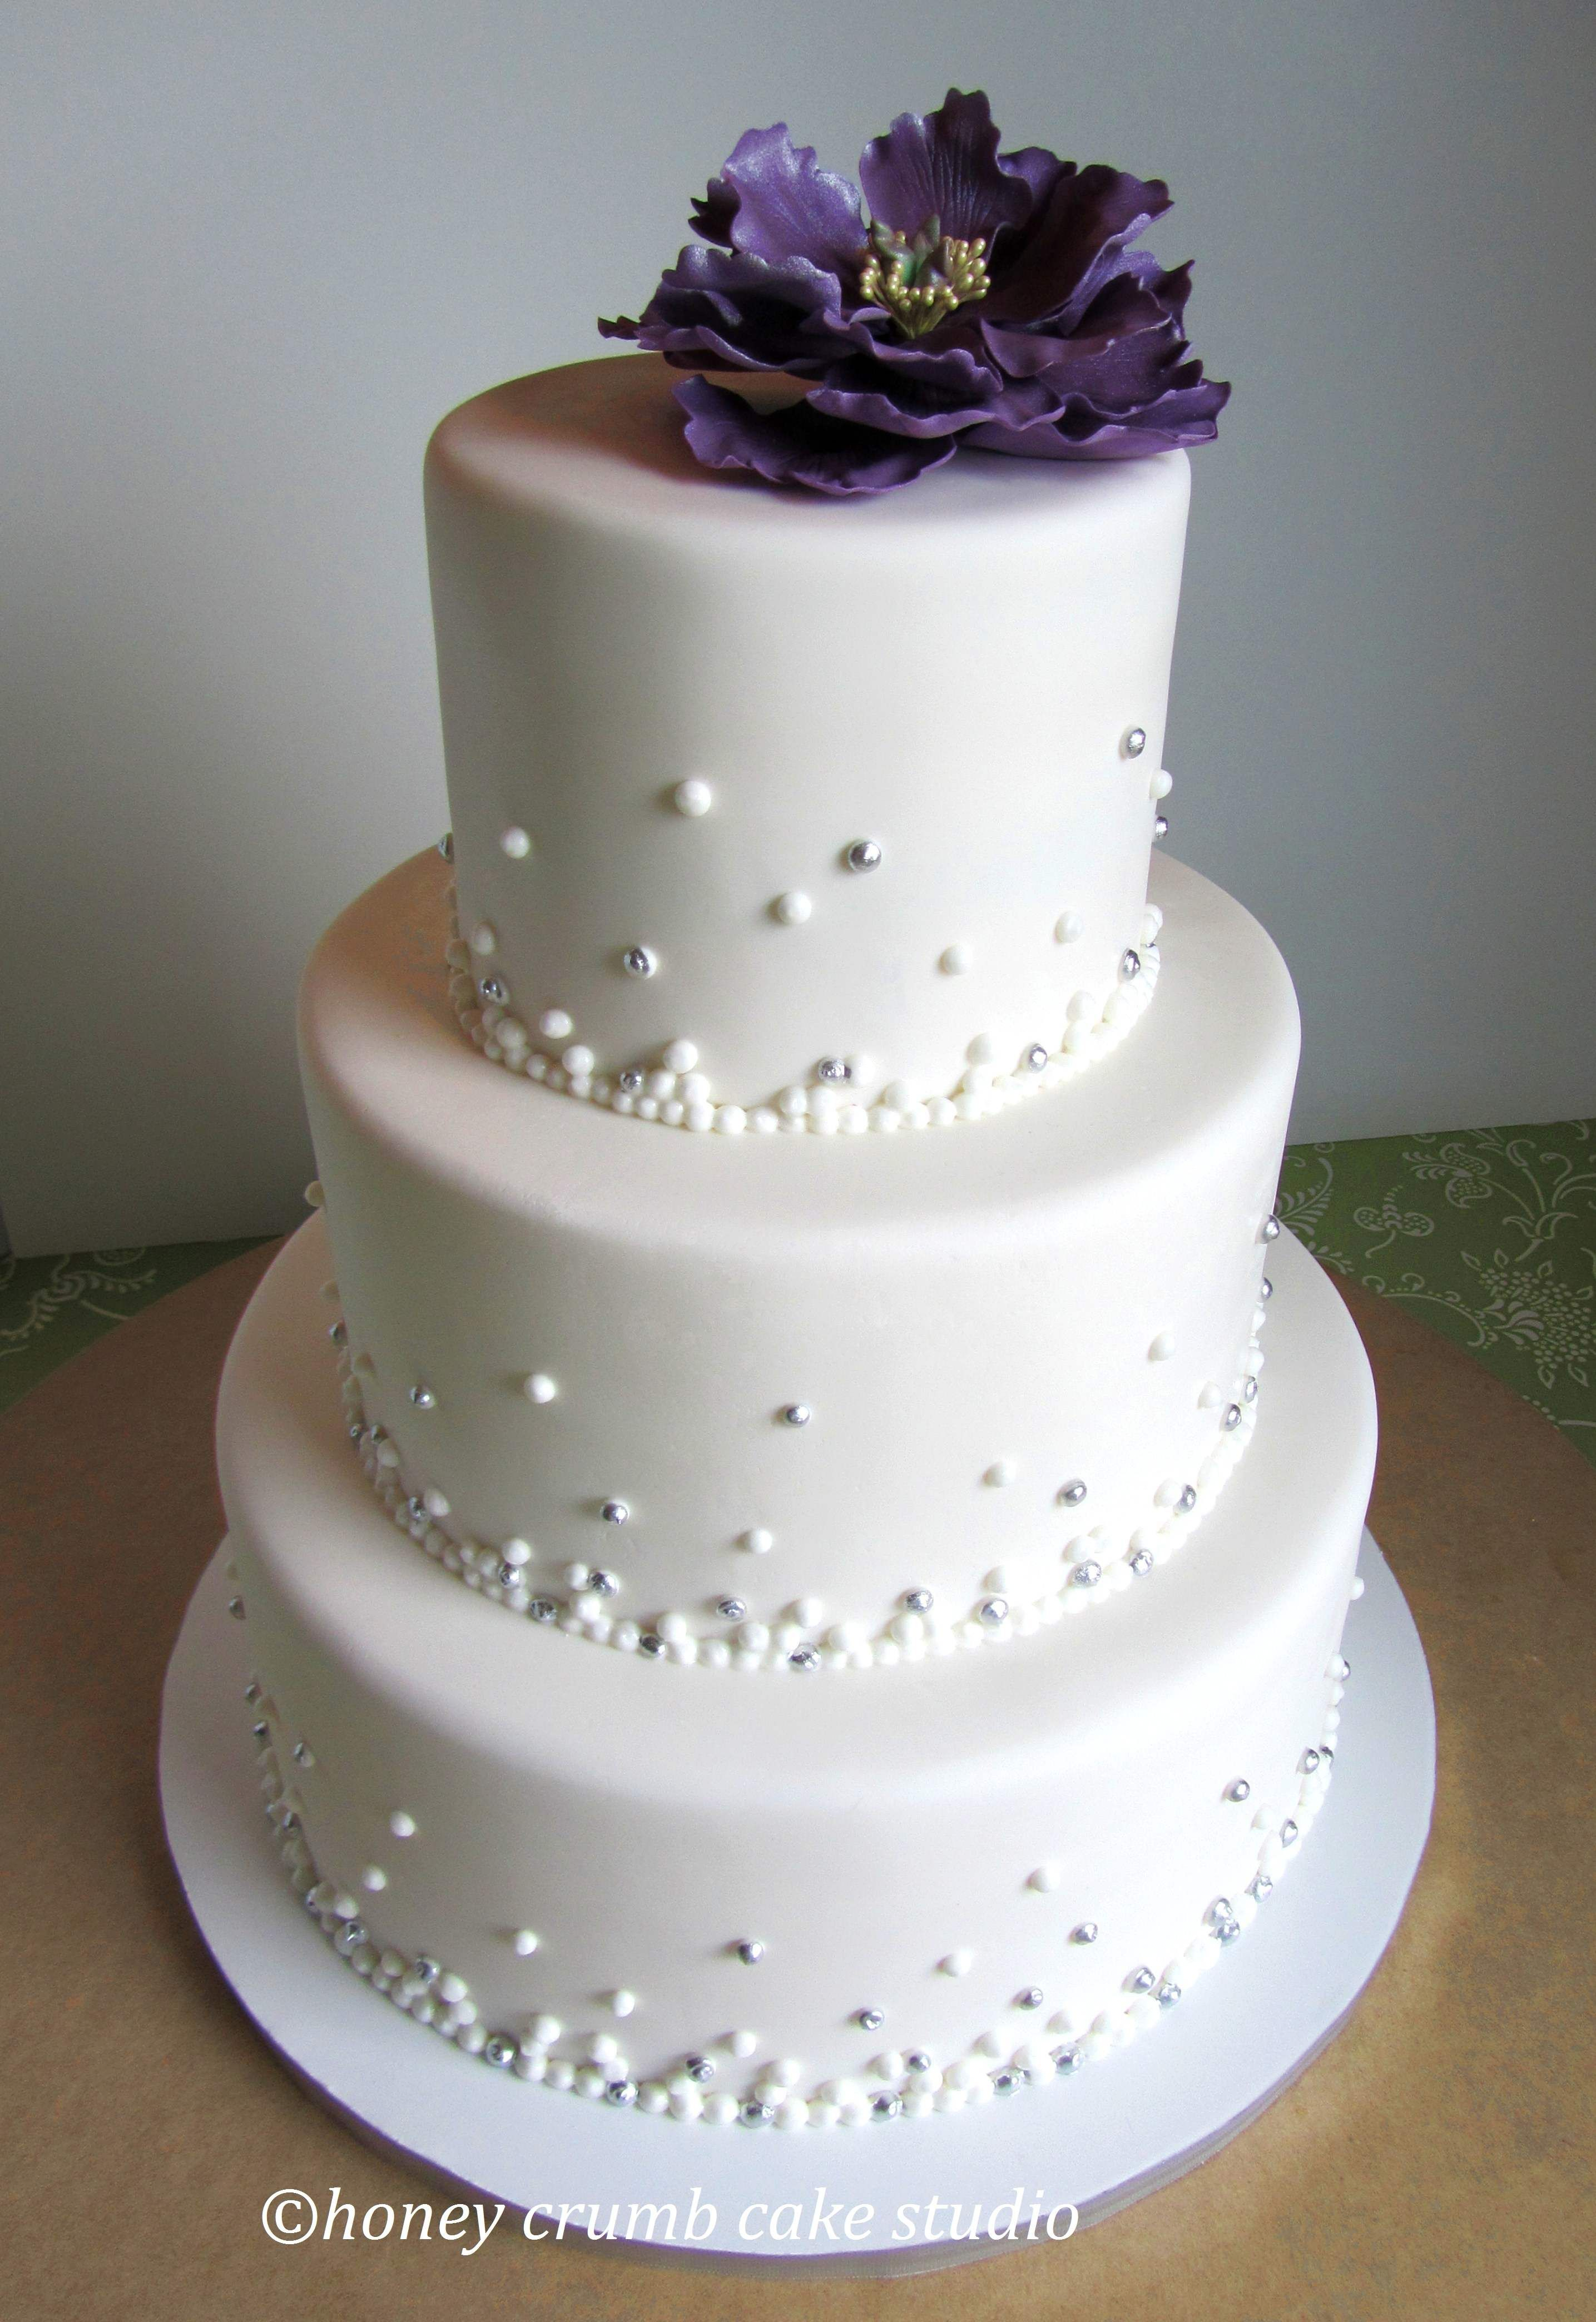 Three-tiered wedding cake for a reception at the Space Needle, Seattle, WA. 'Champagne bubbles' piped with Royal Icing and accented here and there with edible silver luster. Sugar peony.